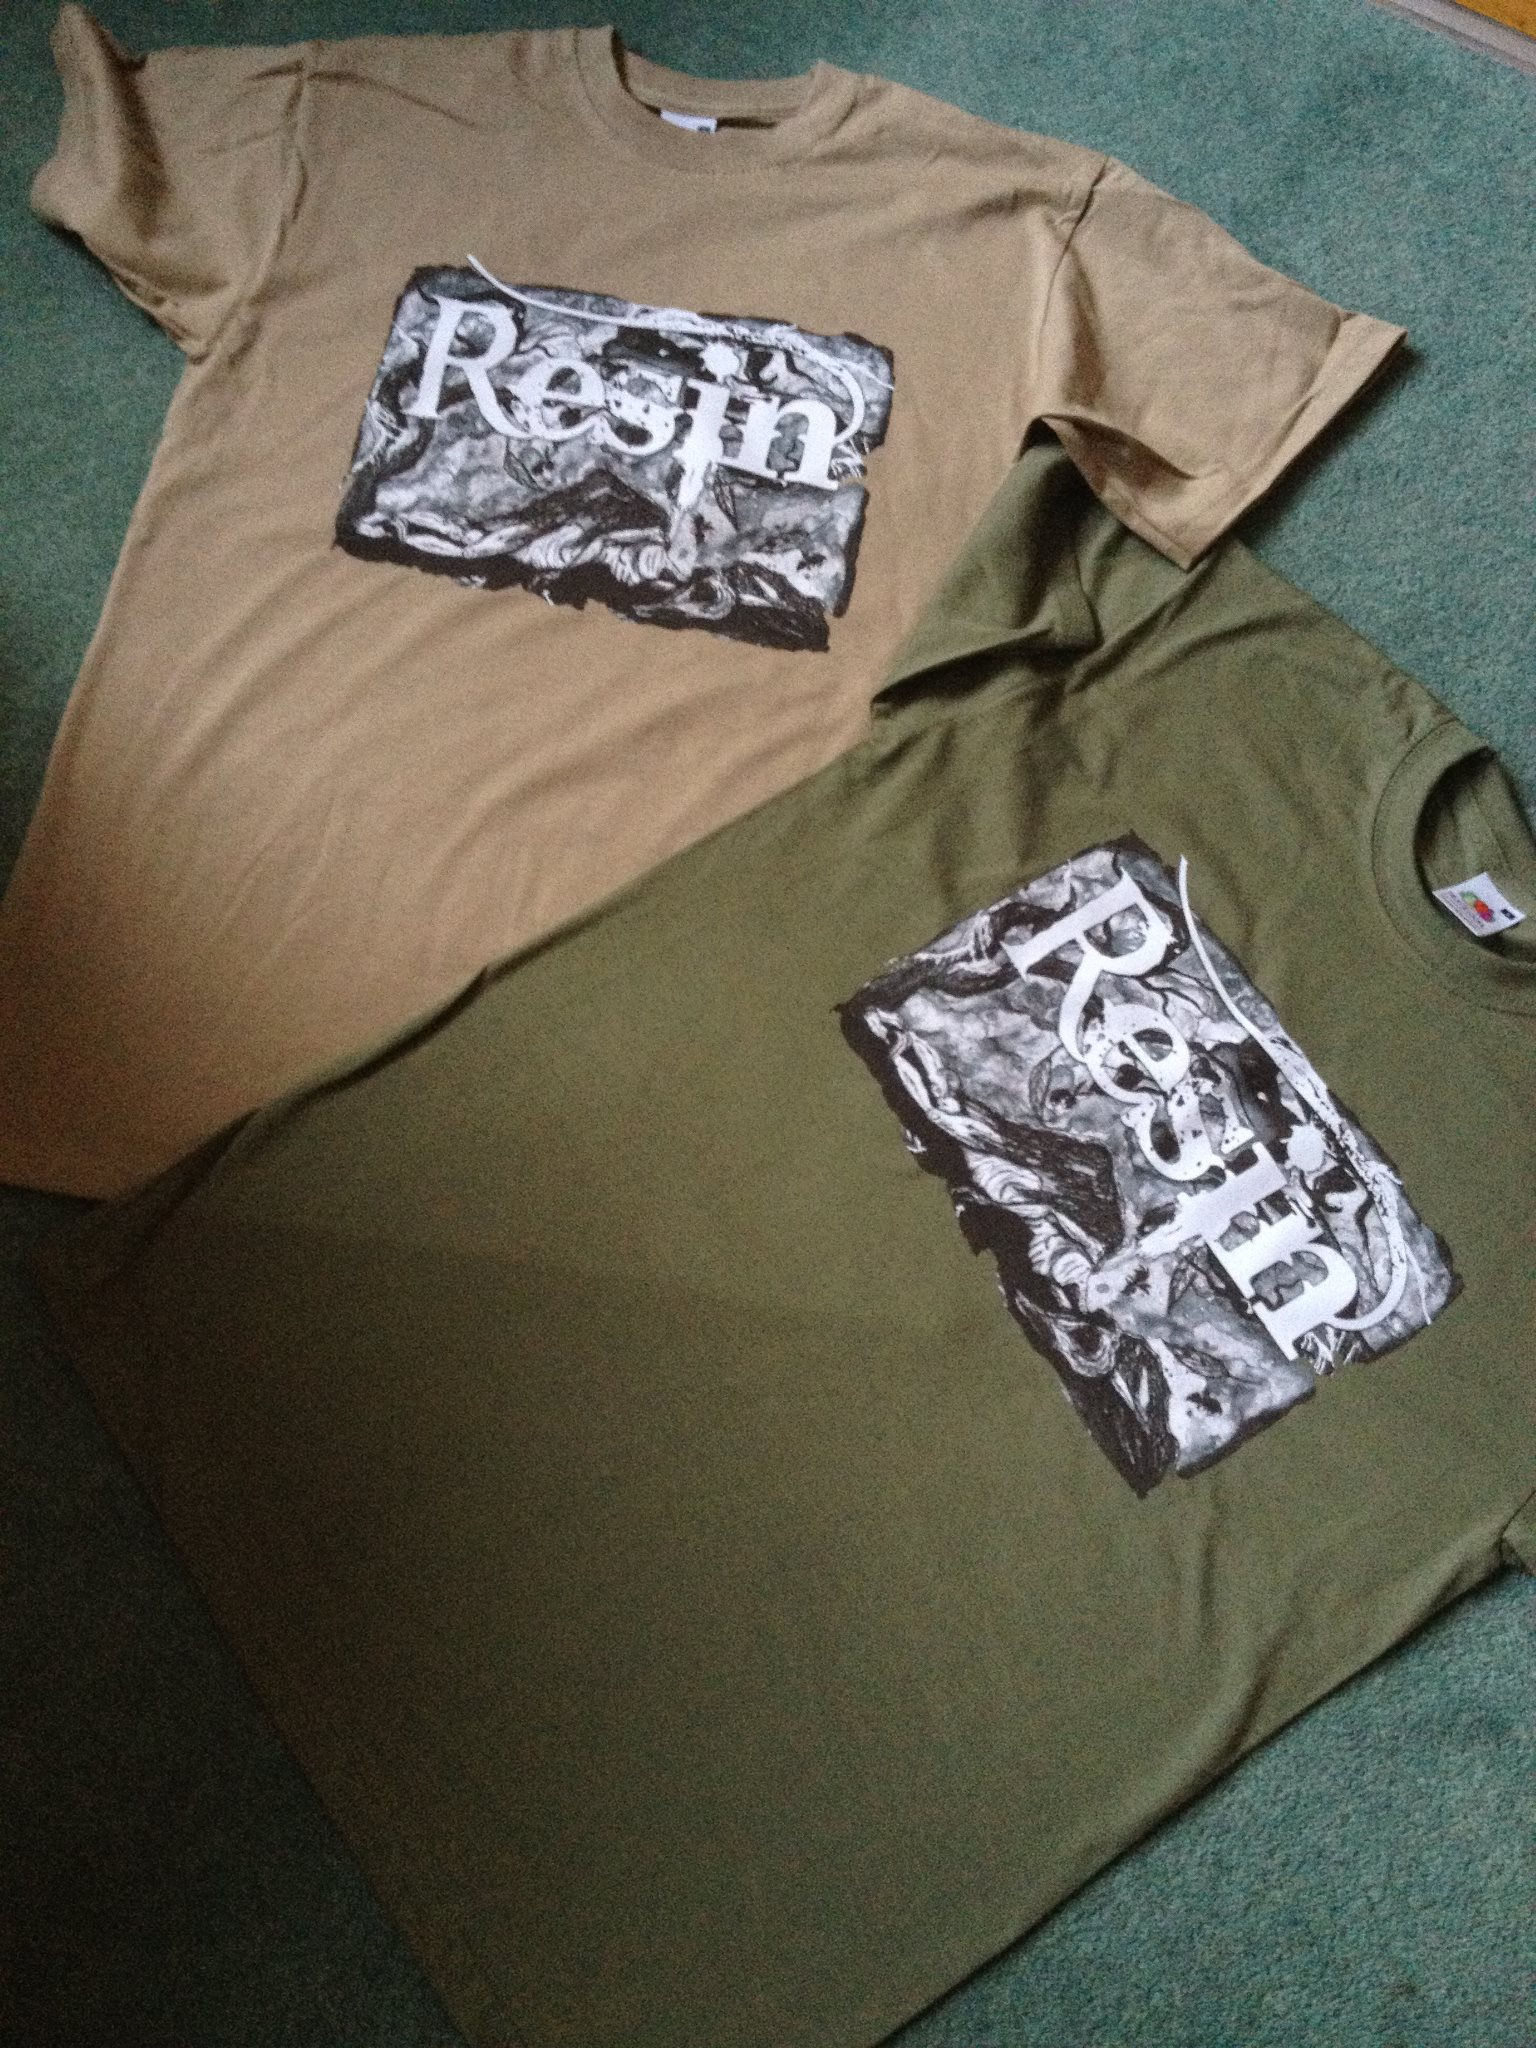 Resin Band T Shirts July 2012